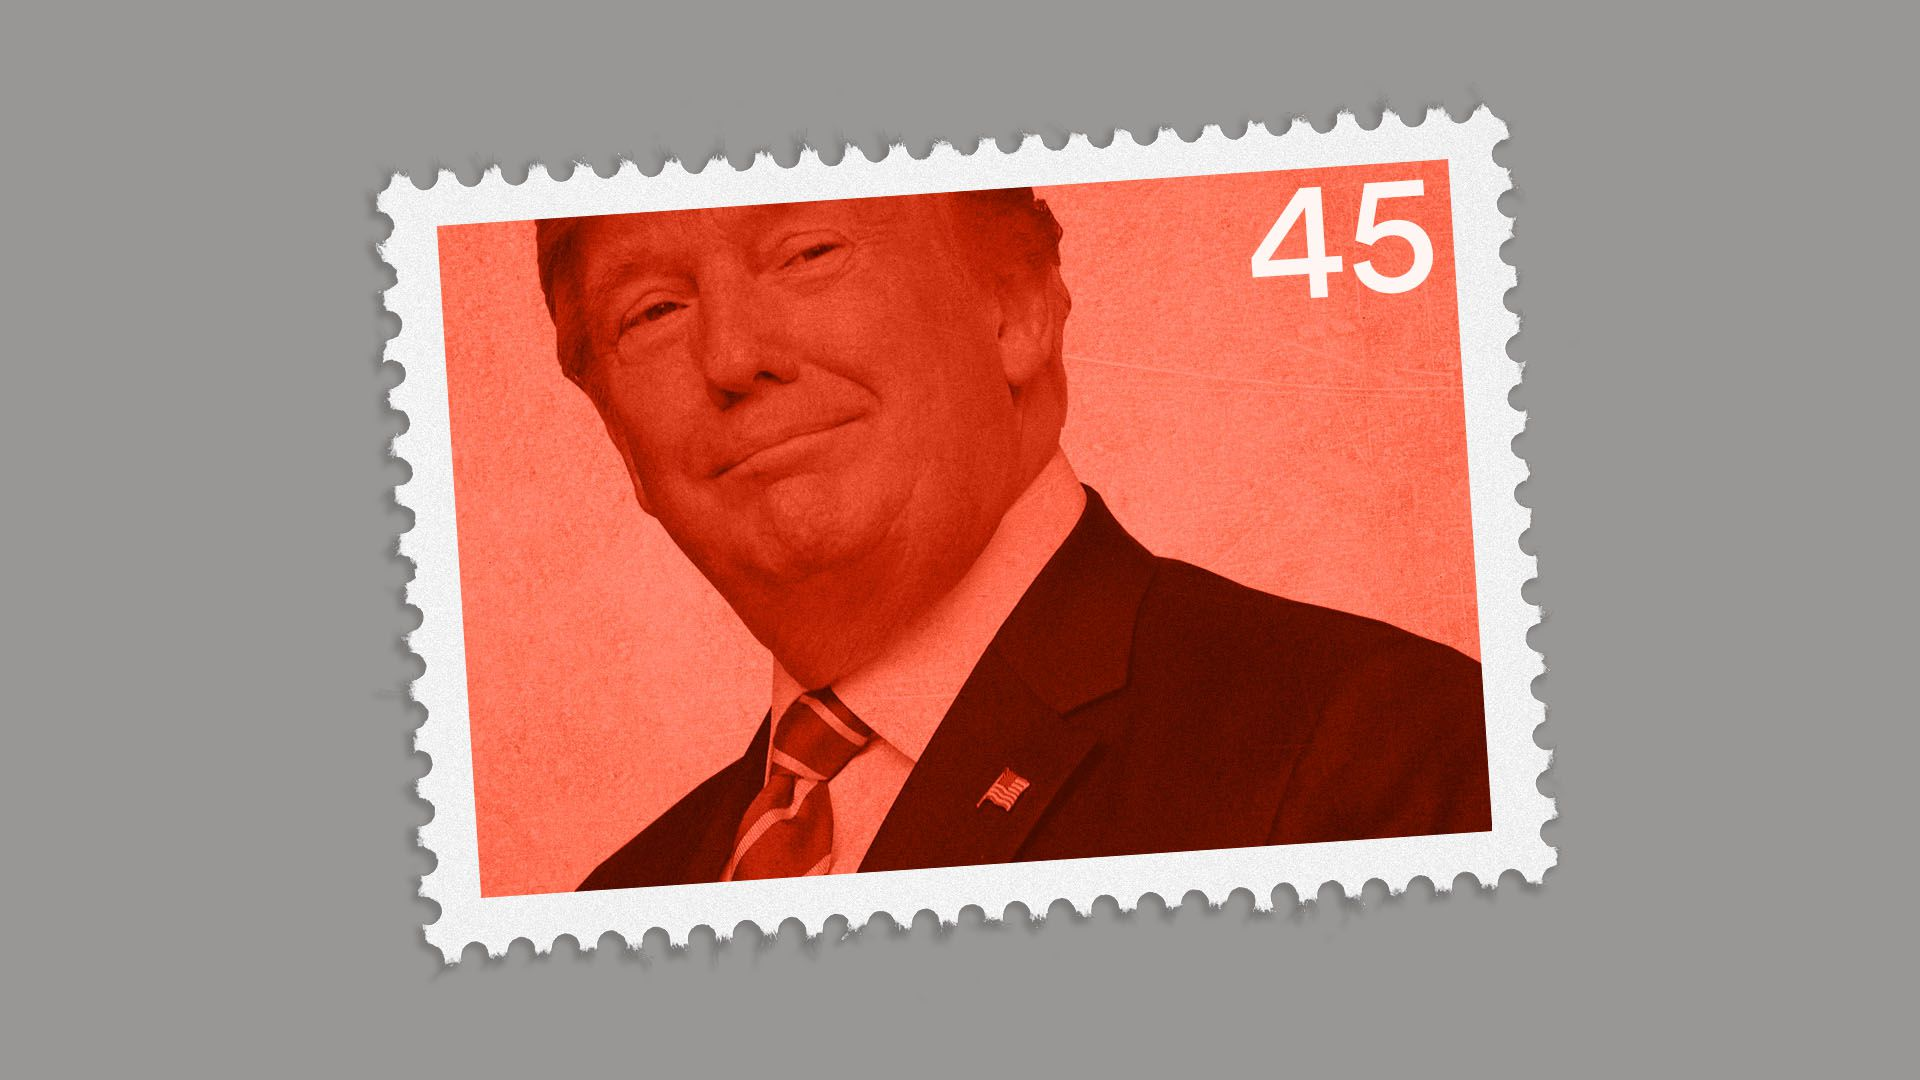 Illustration of a President Trump stamp